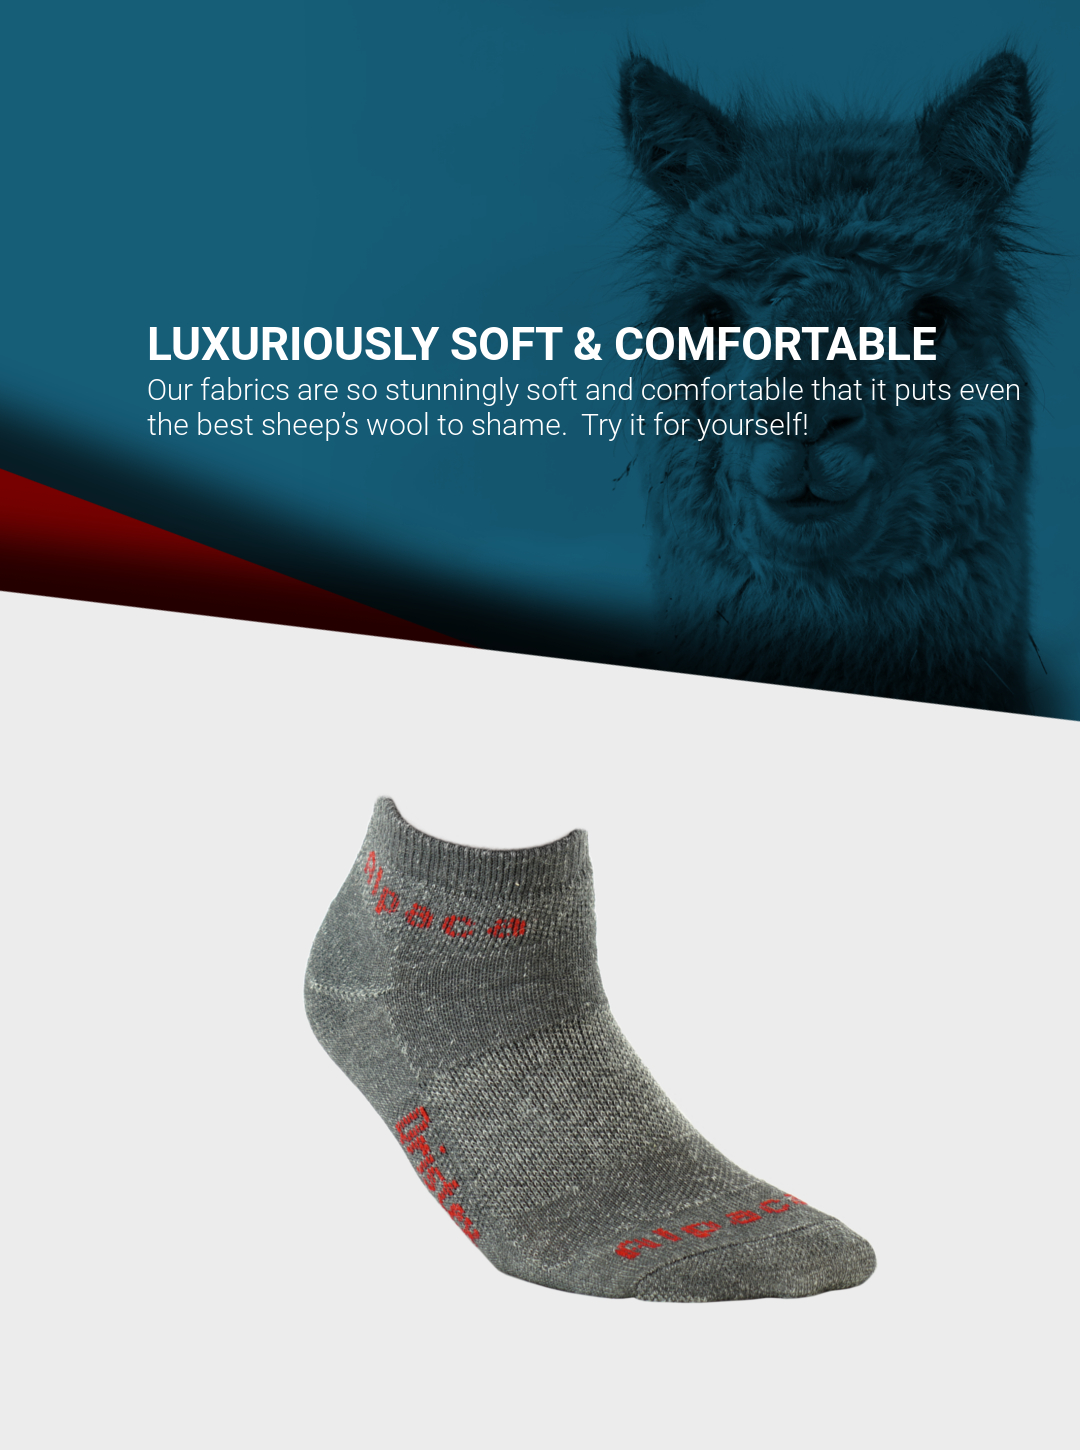 Exotic_Fibers_of_Canada_Alpaca_Sport_Ankle_Socks_Comfort_Mobile